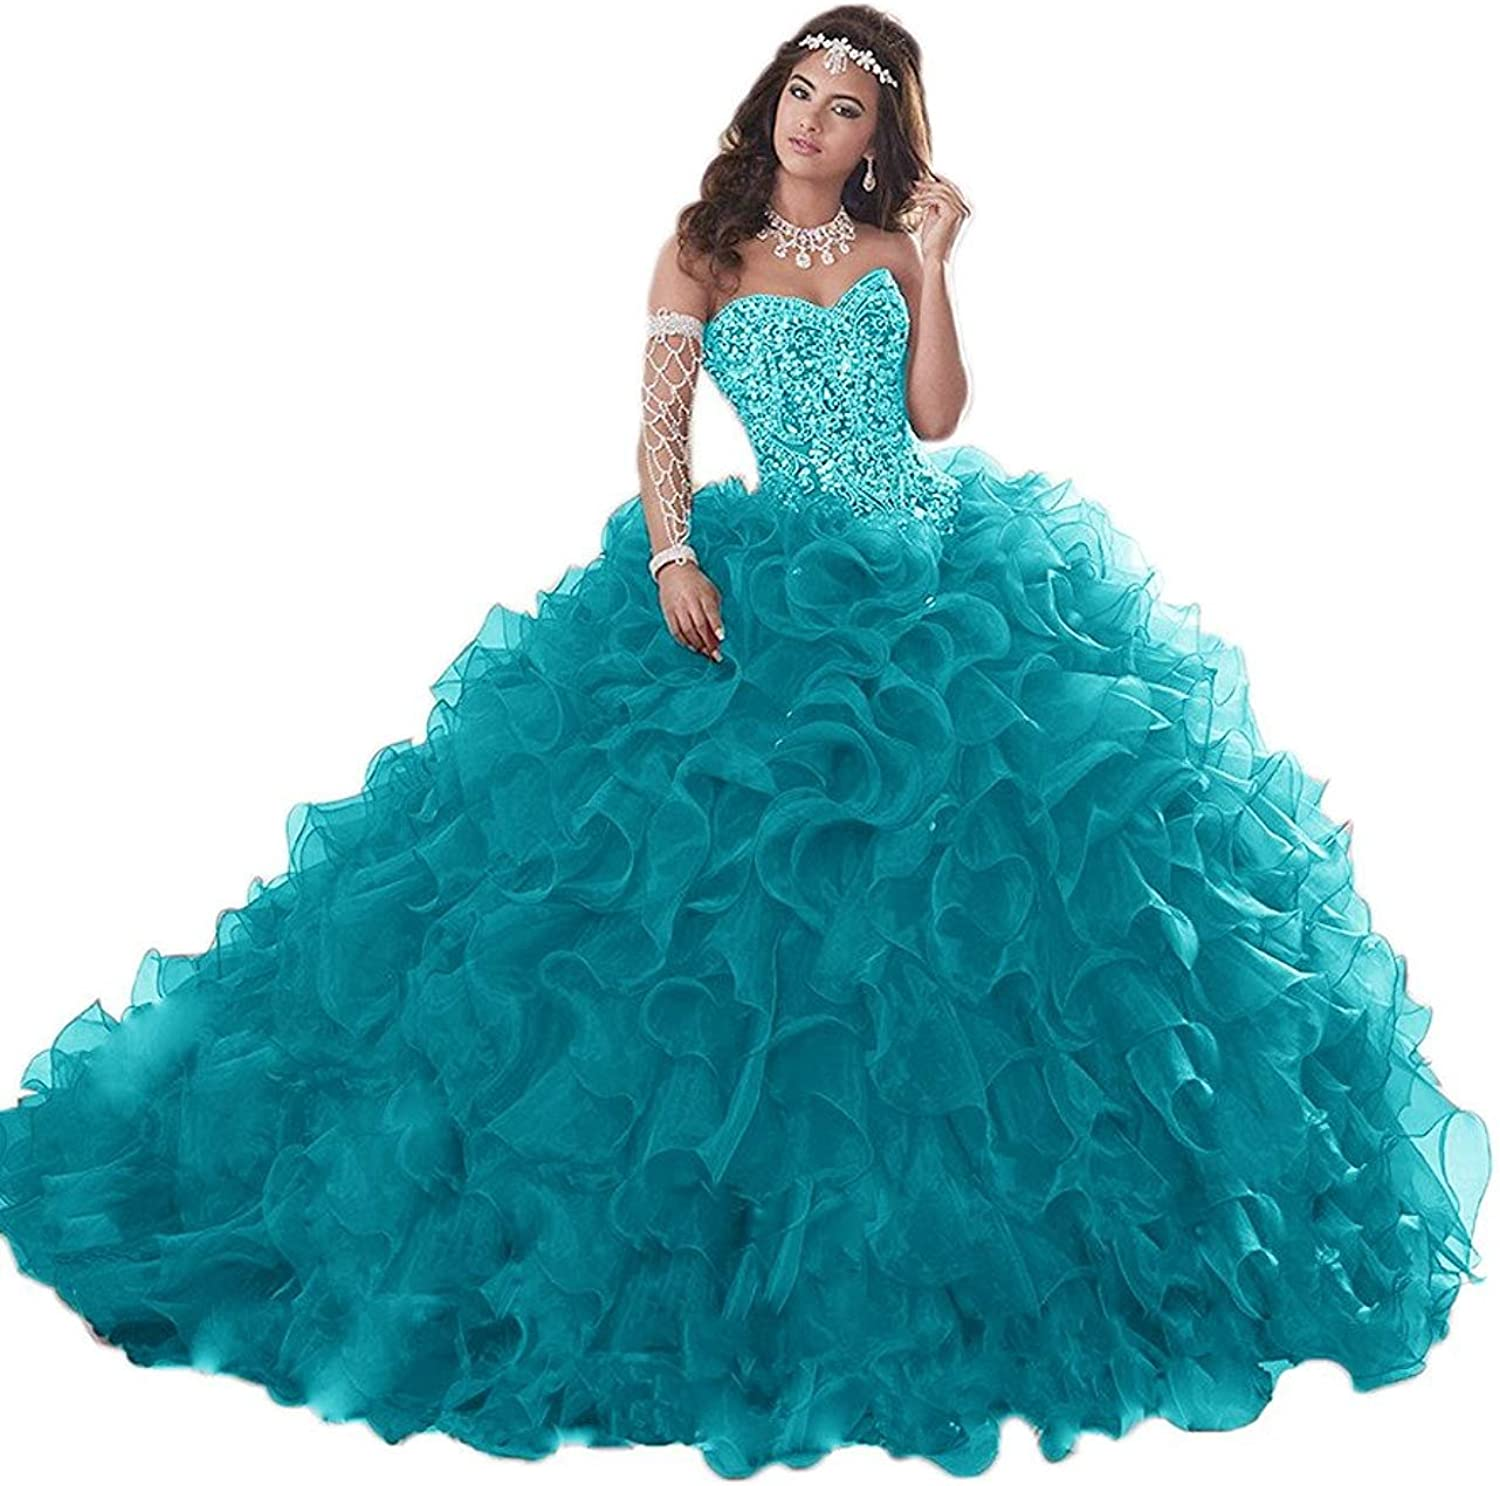 20KyleBird Women's Elegant Strapless Organza Quinceanera Dresses Long Sweetheart Beaded Prom Evening Ball Gowns KB021